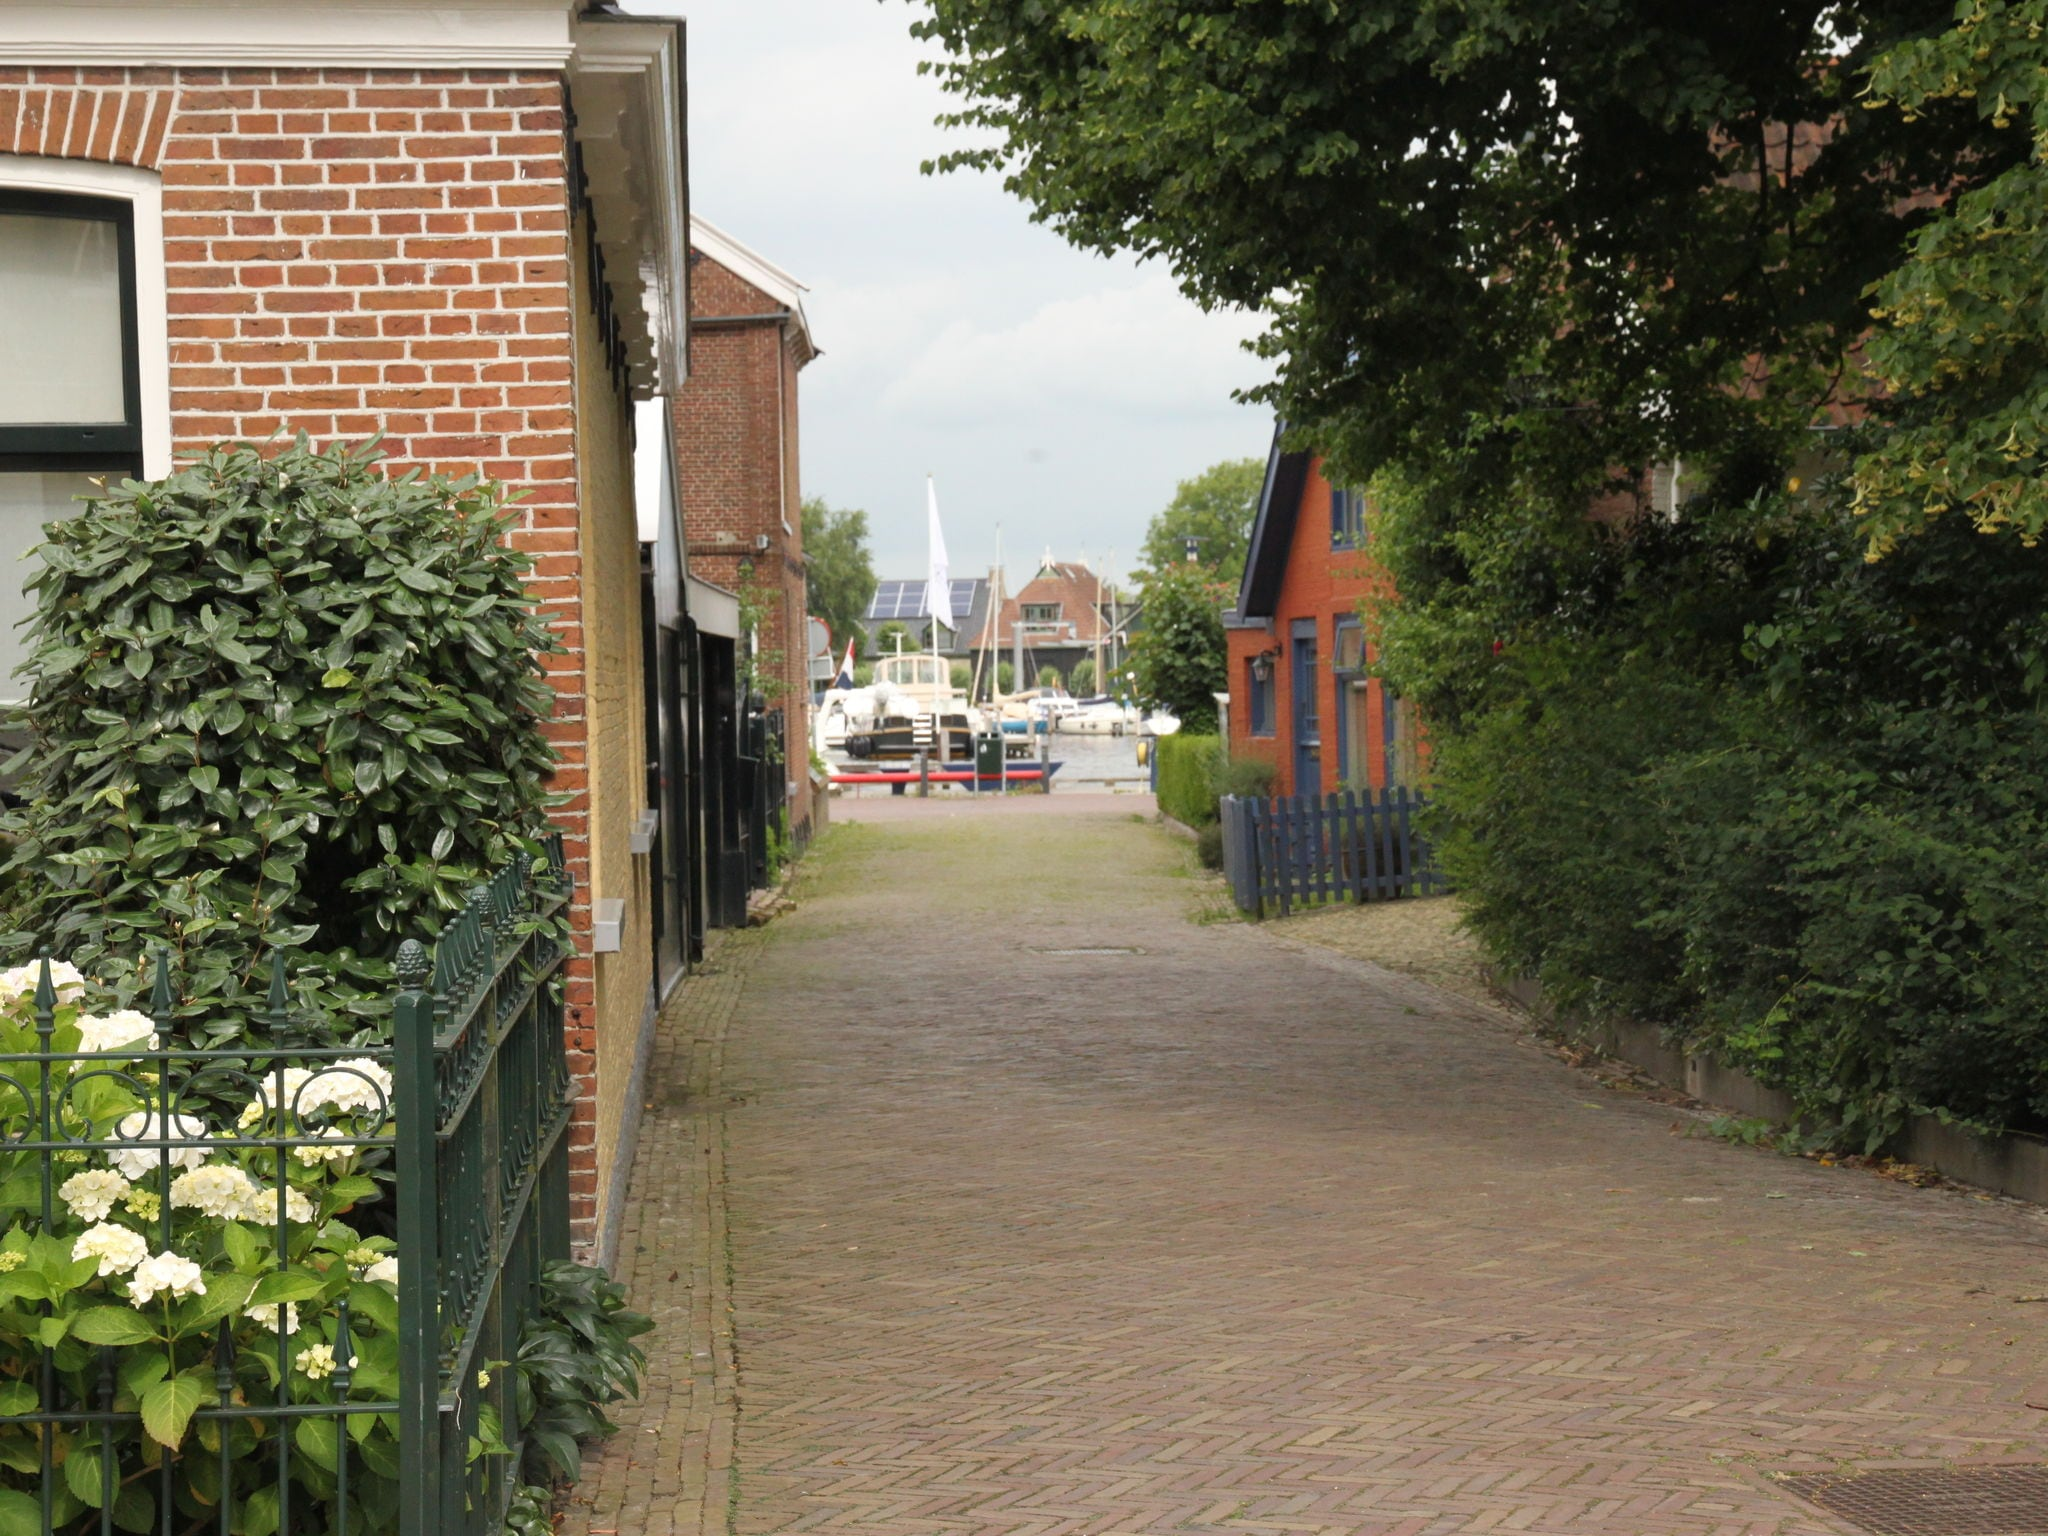 Holland | Friesland | Holiday home 't Friese Water | all year | AreaSummer1KM